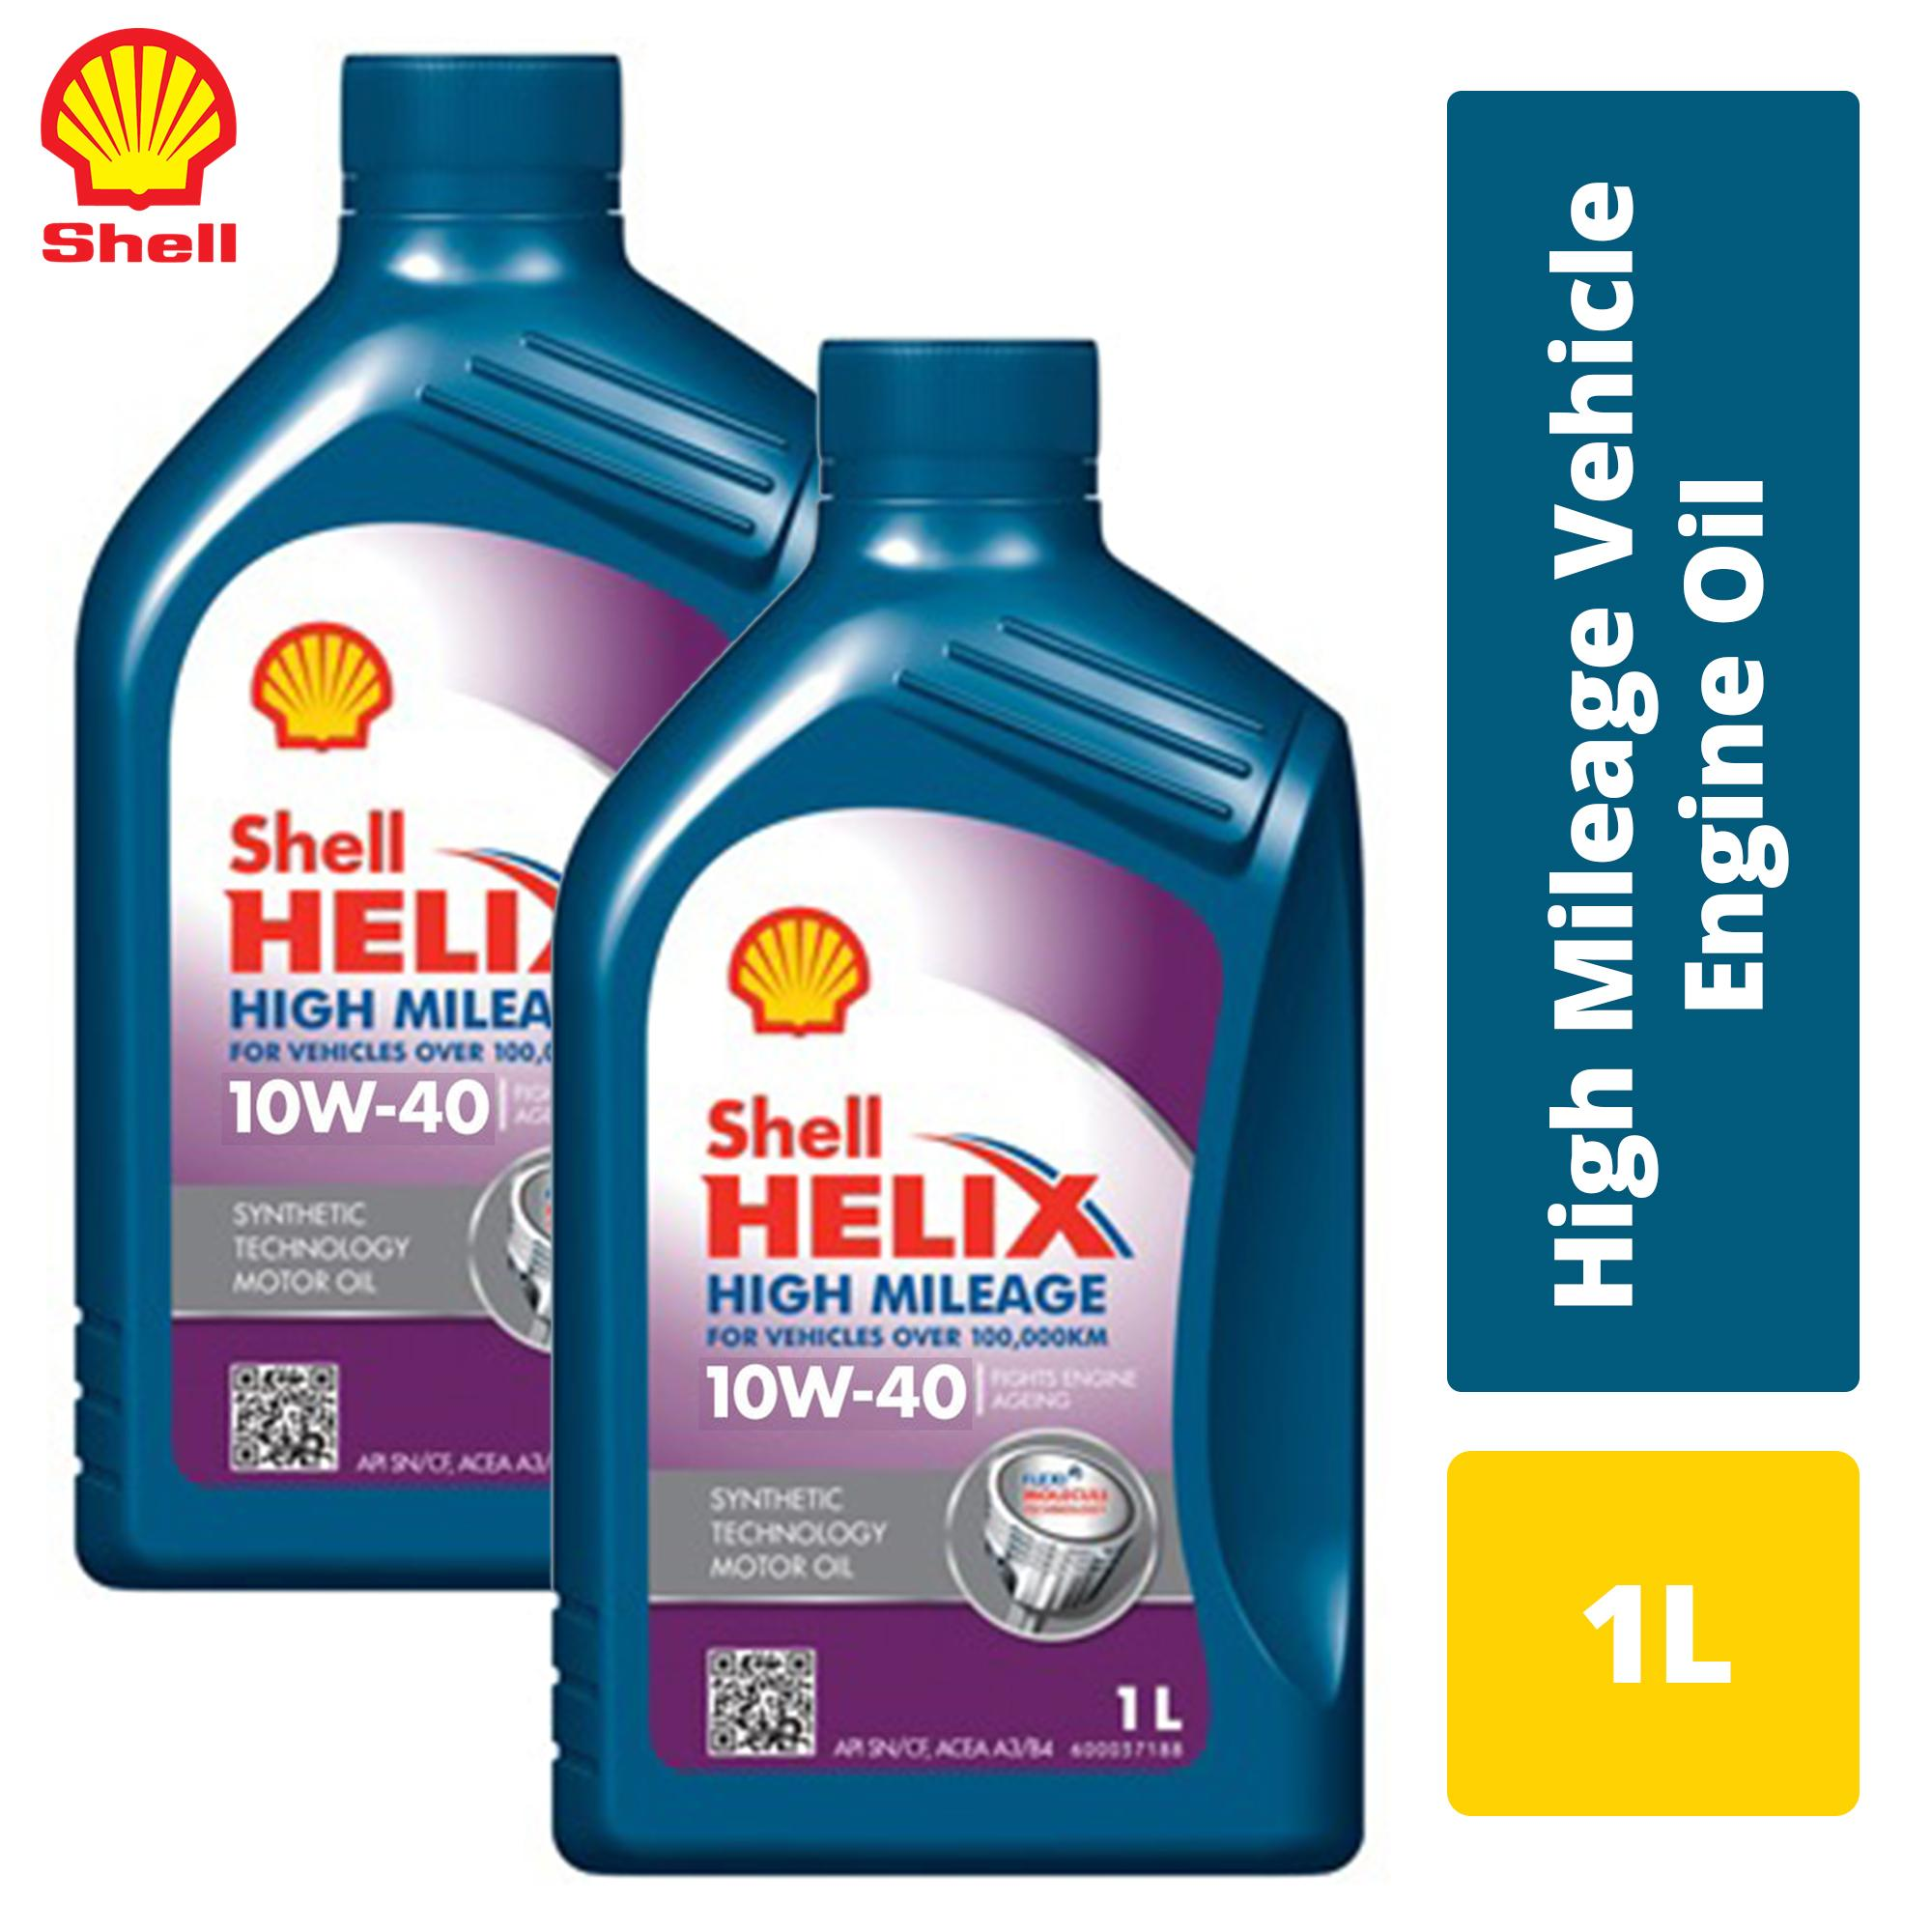 Shell Philippines - Shell Greases & Lubricants for sale - prices